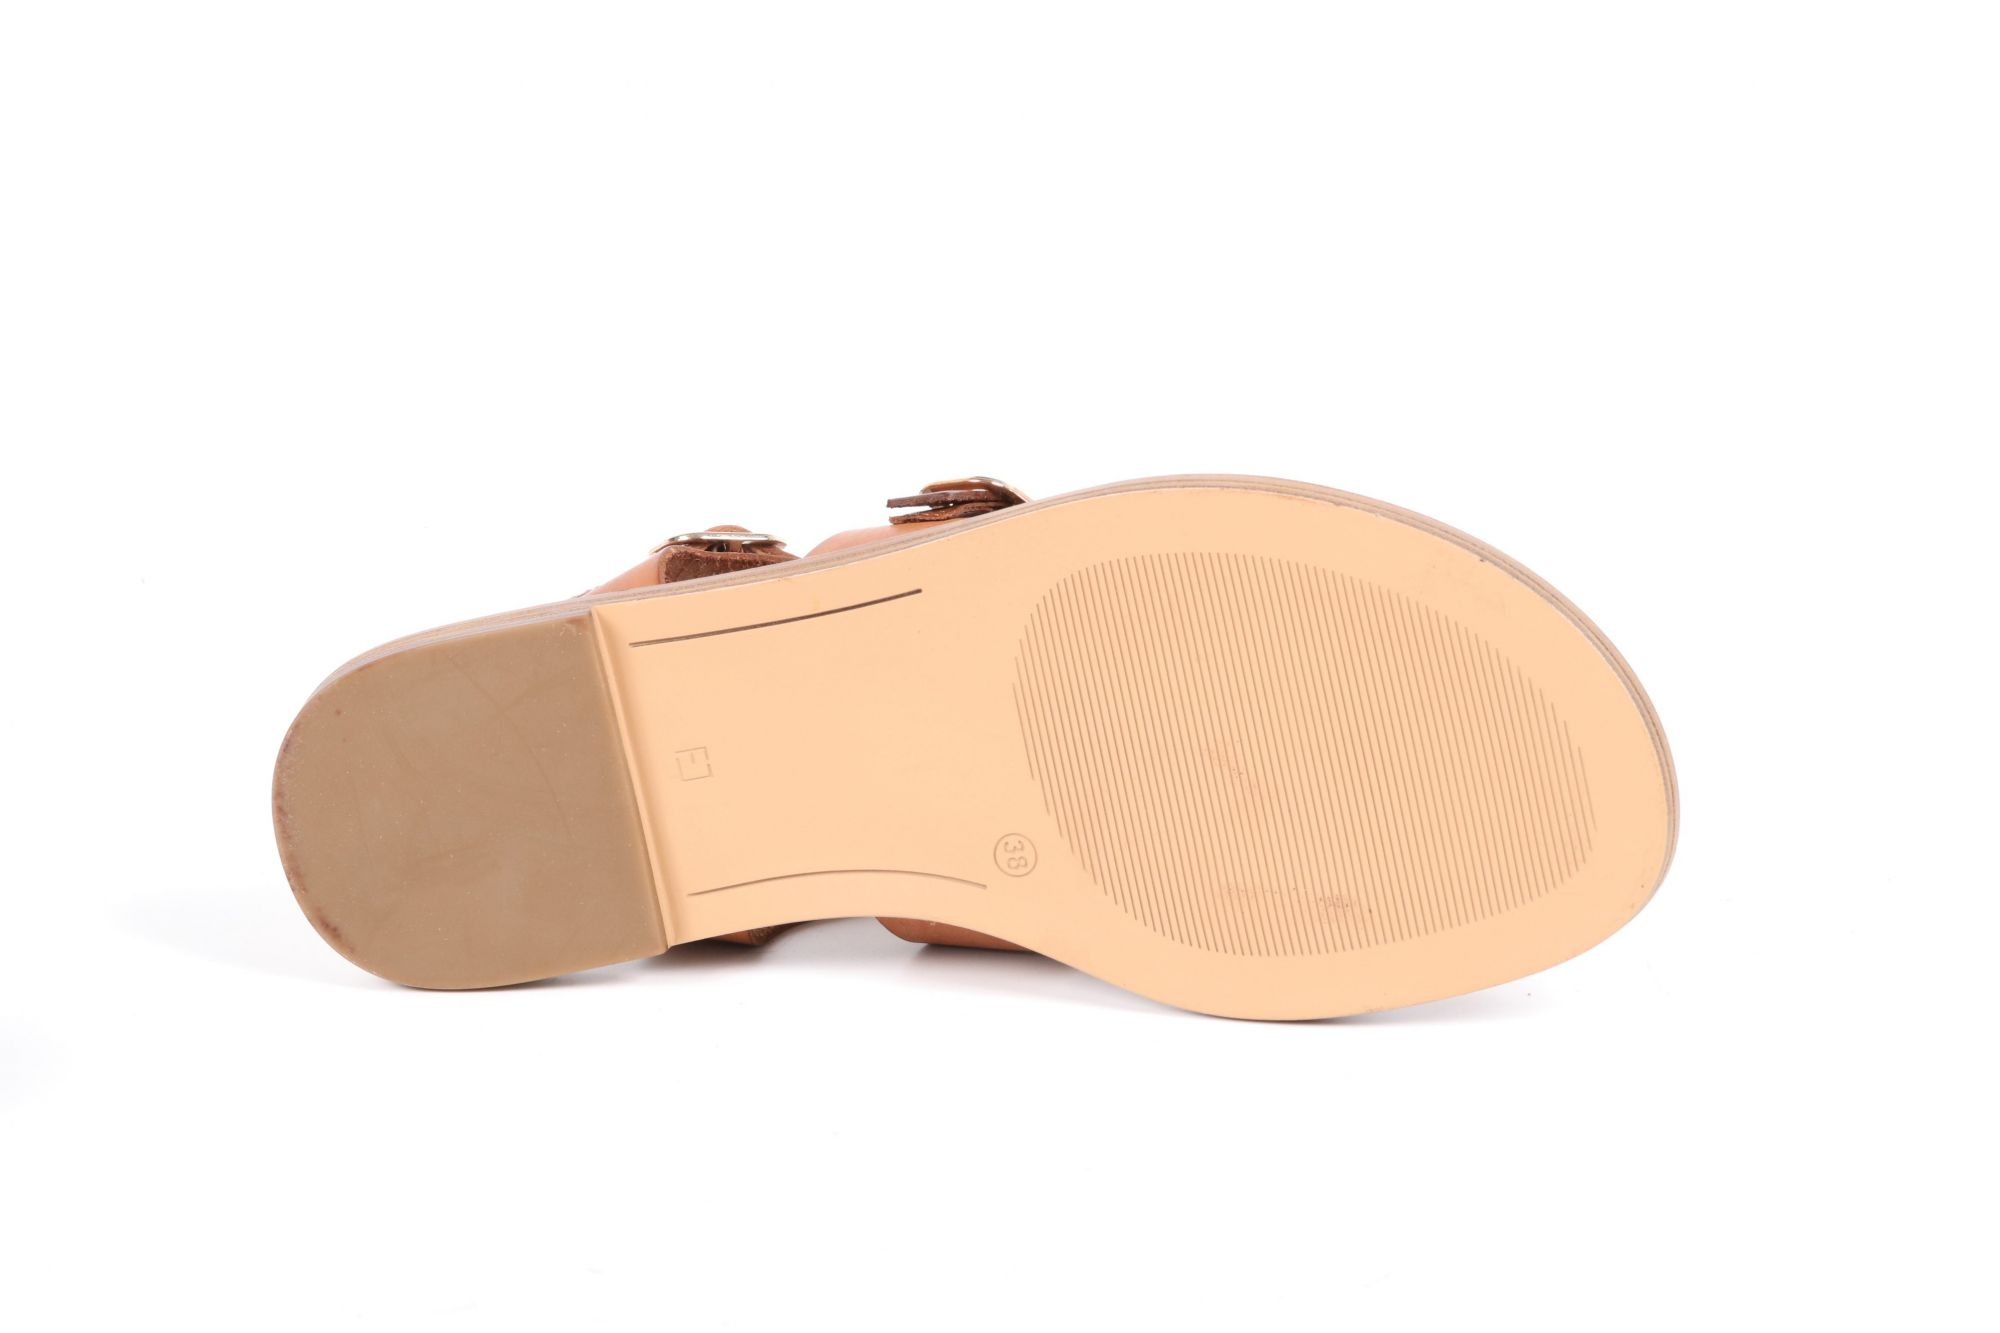 Sandales femme plates Aliwell Solal cuir camel